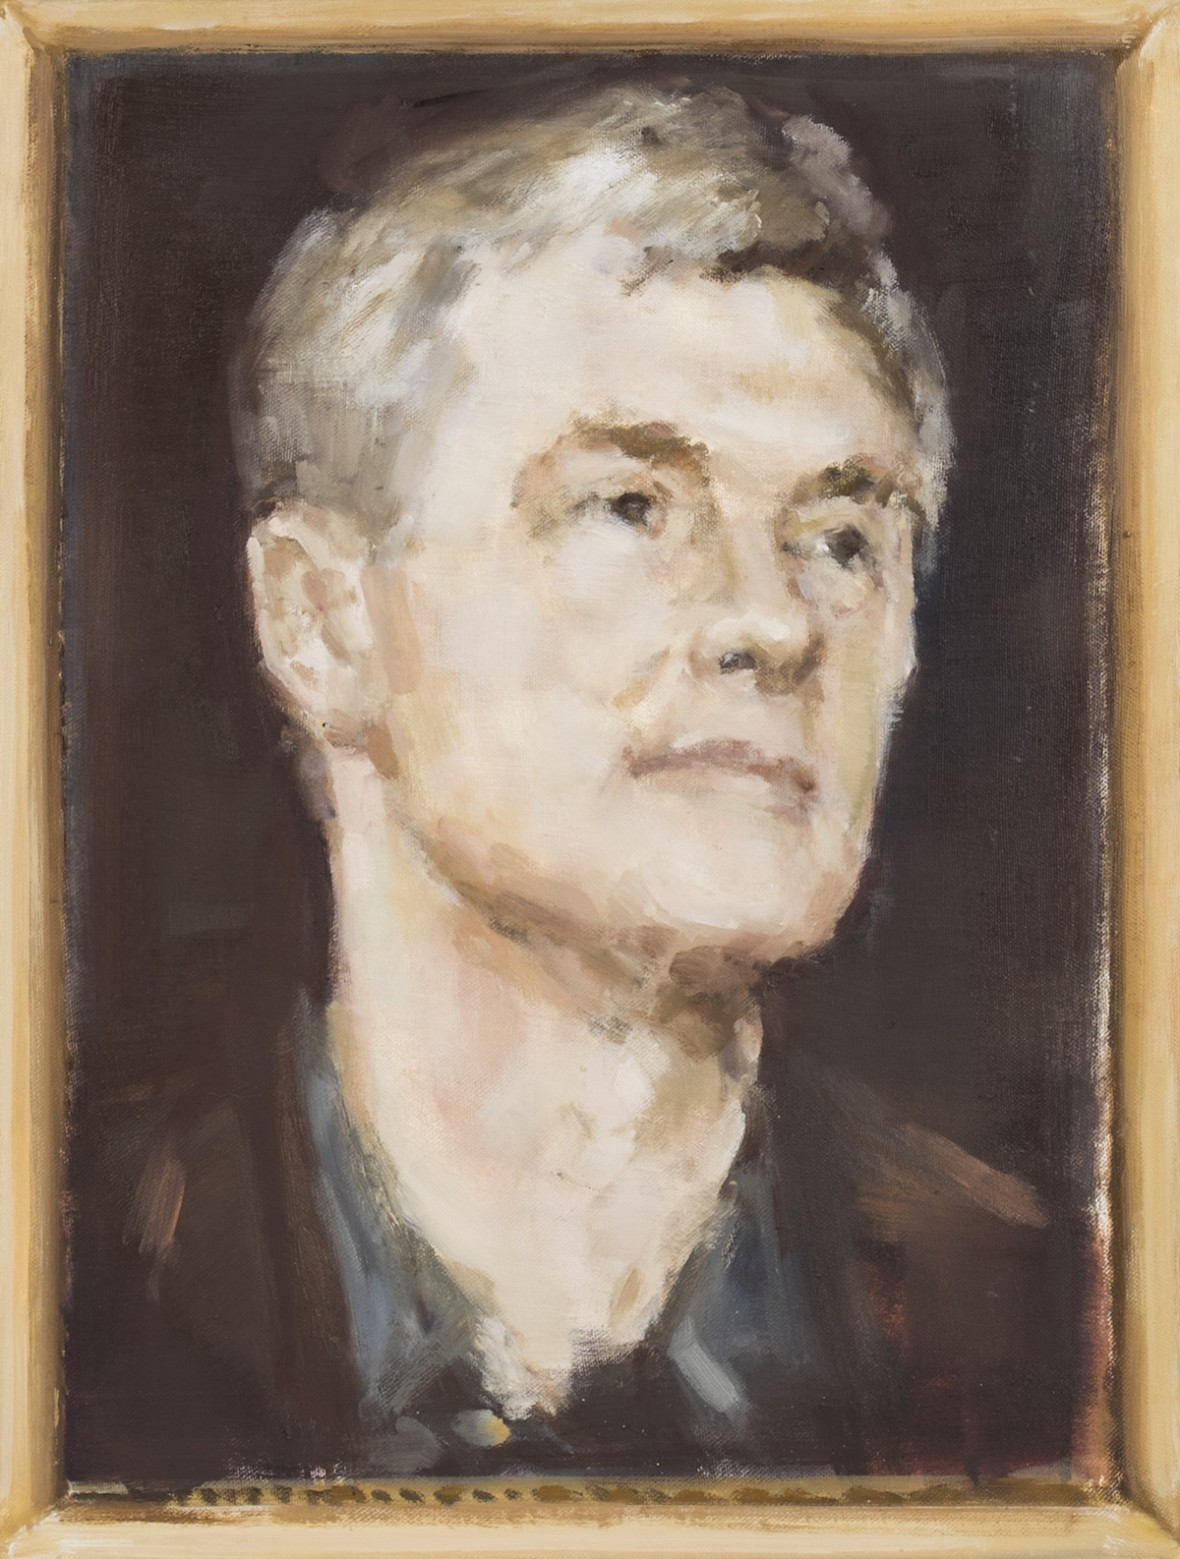 E. Karpaviciute, Portrait study. Dawid Zwirner, oil on canvas, 50x38, 2015